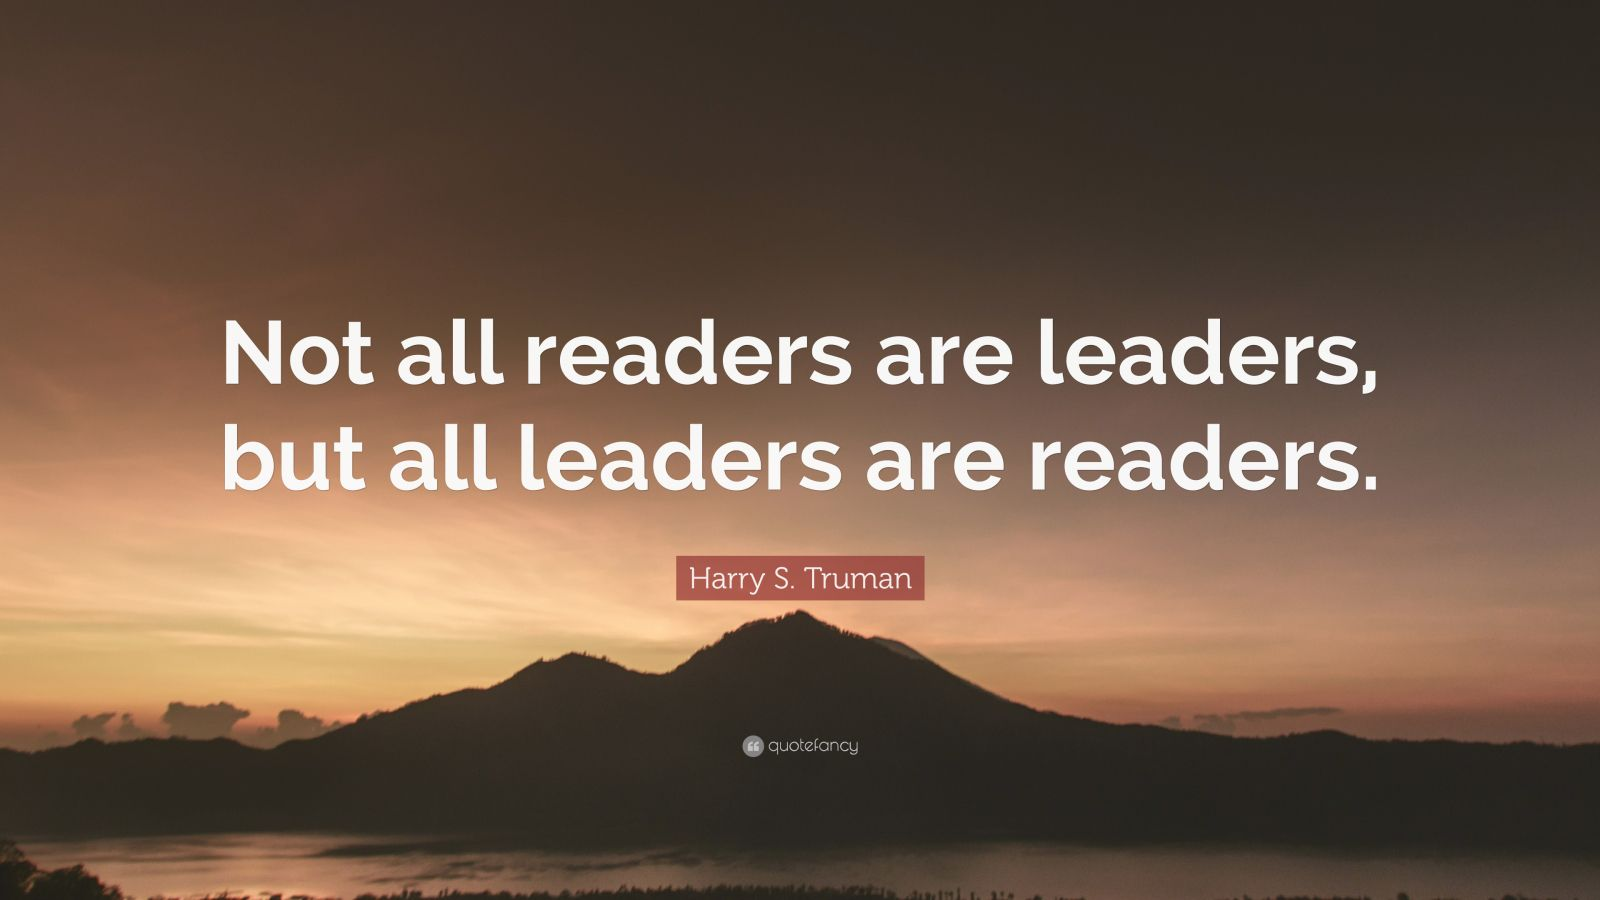 """Elon Musk Quotes >> Harry S. Truman Quote: """"Not all readers are leaders, but ..."""